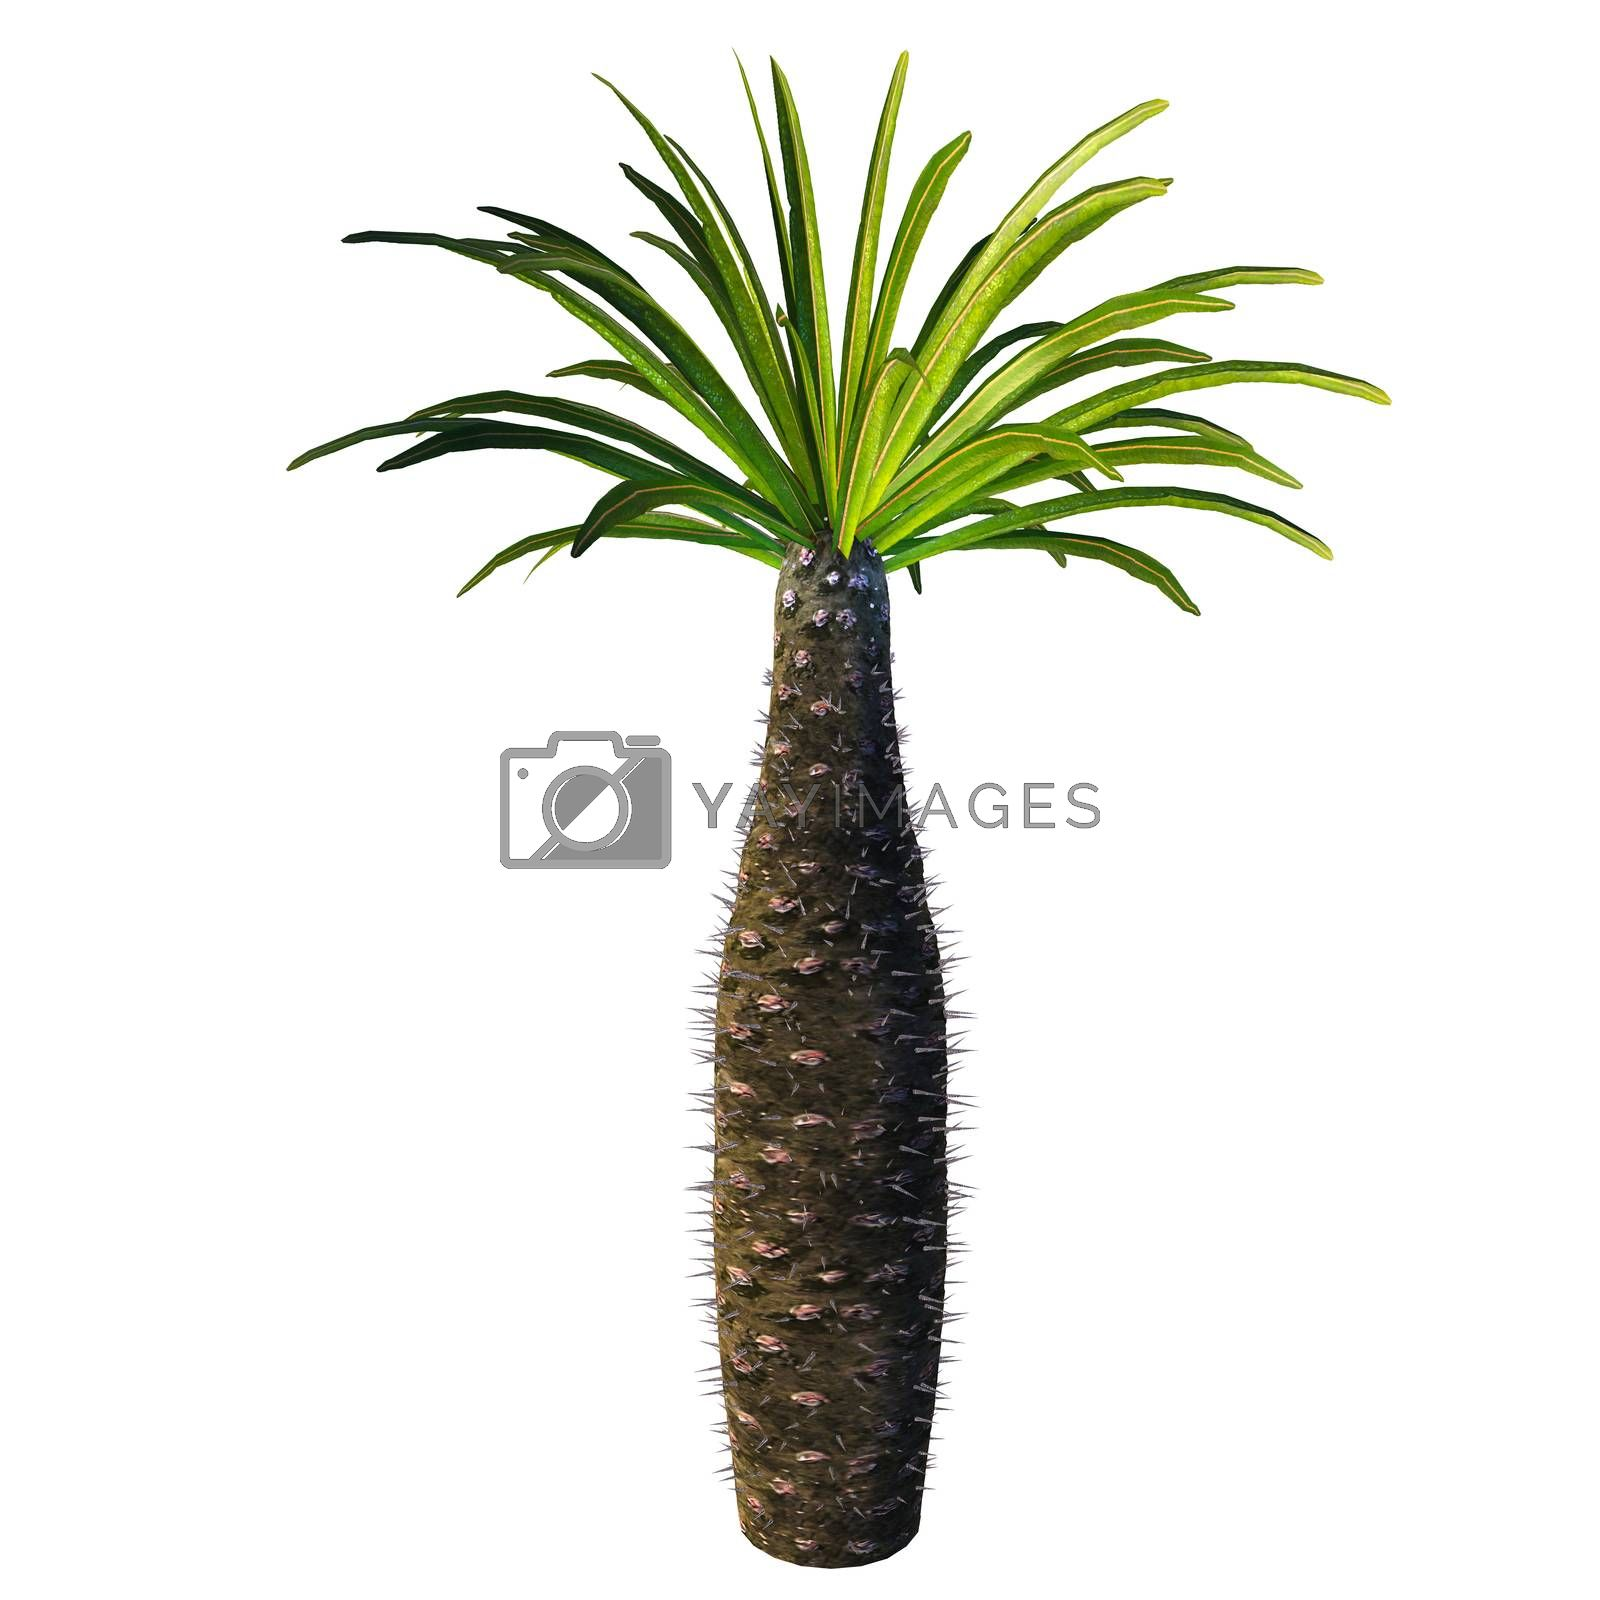 Pachypodium is a genus of African arboreal plant that lives in dry and arid conditions on Madagascar and the mainland.